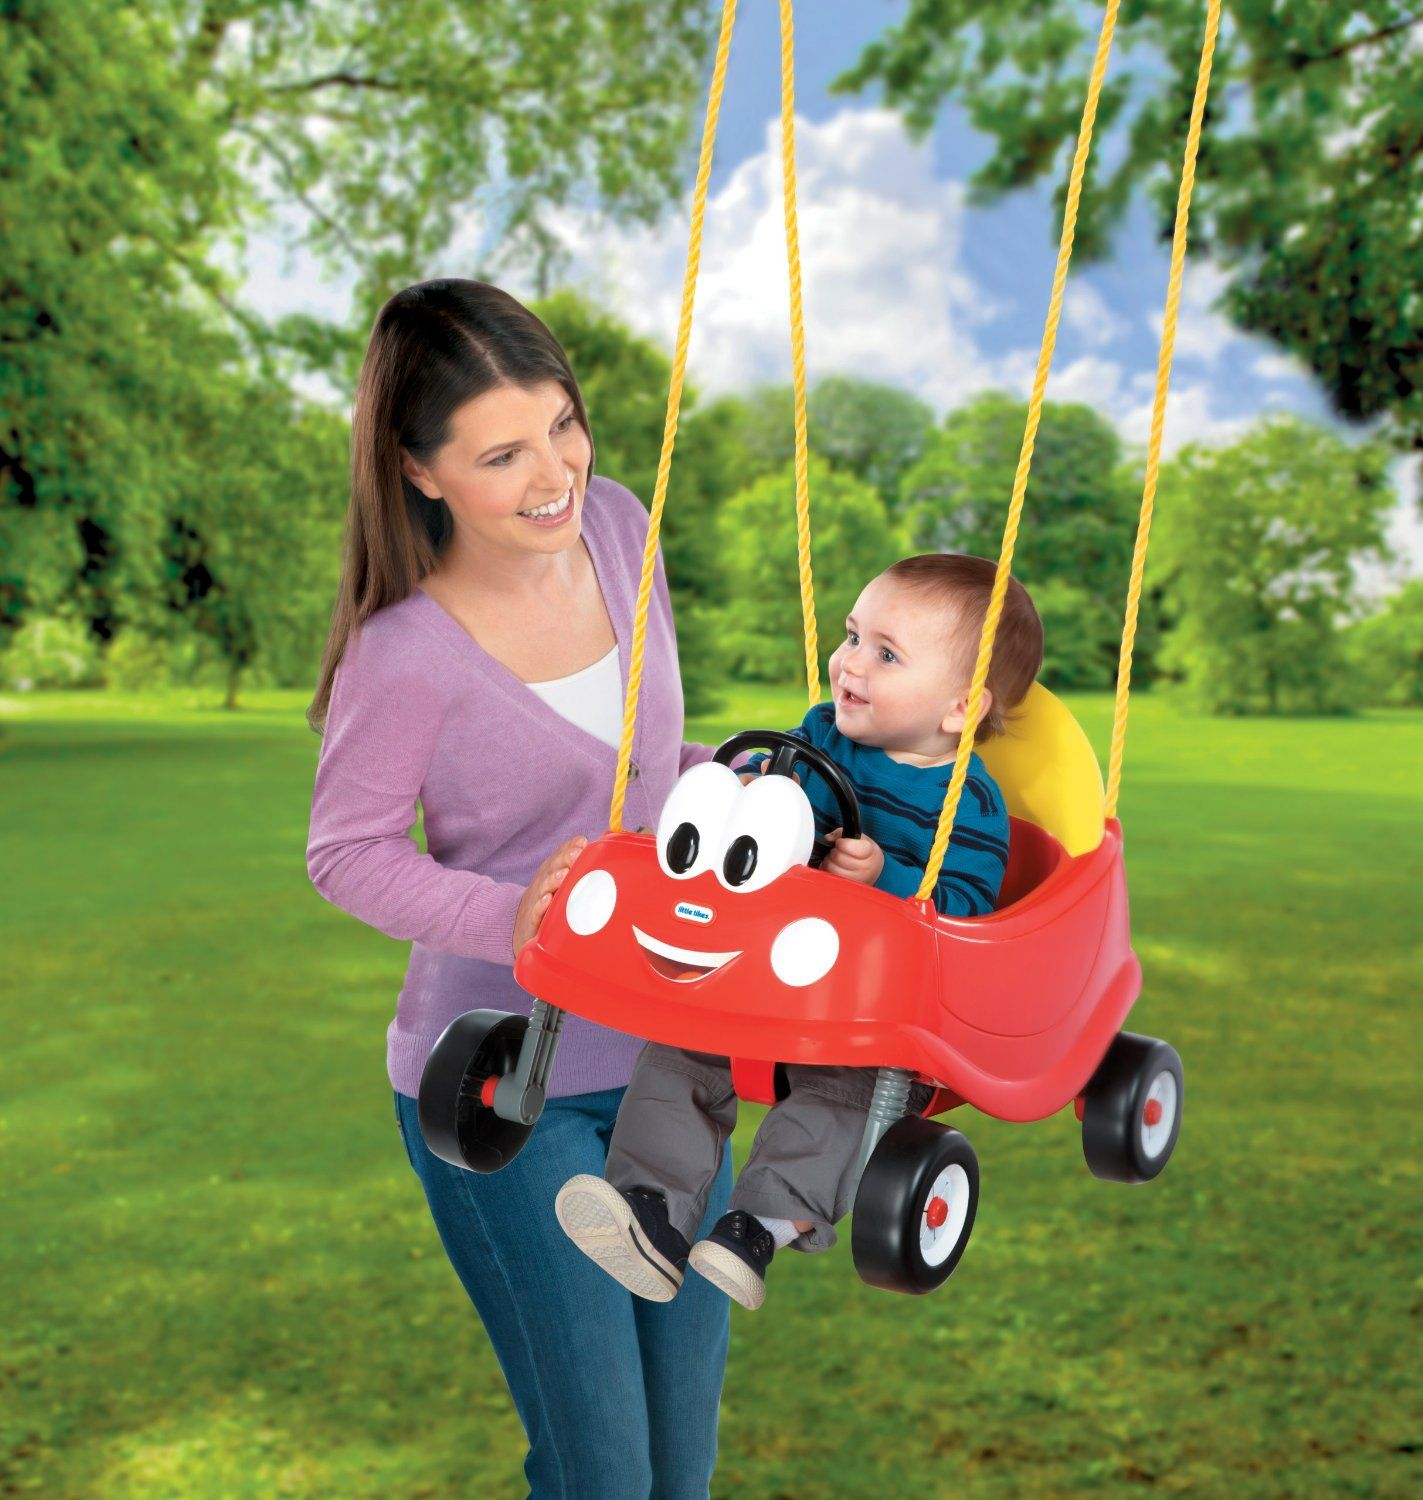 Amazon.com Little Tikes Cozy Coupe First Swing Toys u0026 Games  sc 1 st  Pinterest & Amazon.com: Little Tikes Cozy Coupe First Swing: Toys u0026 Games | Kids ...